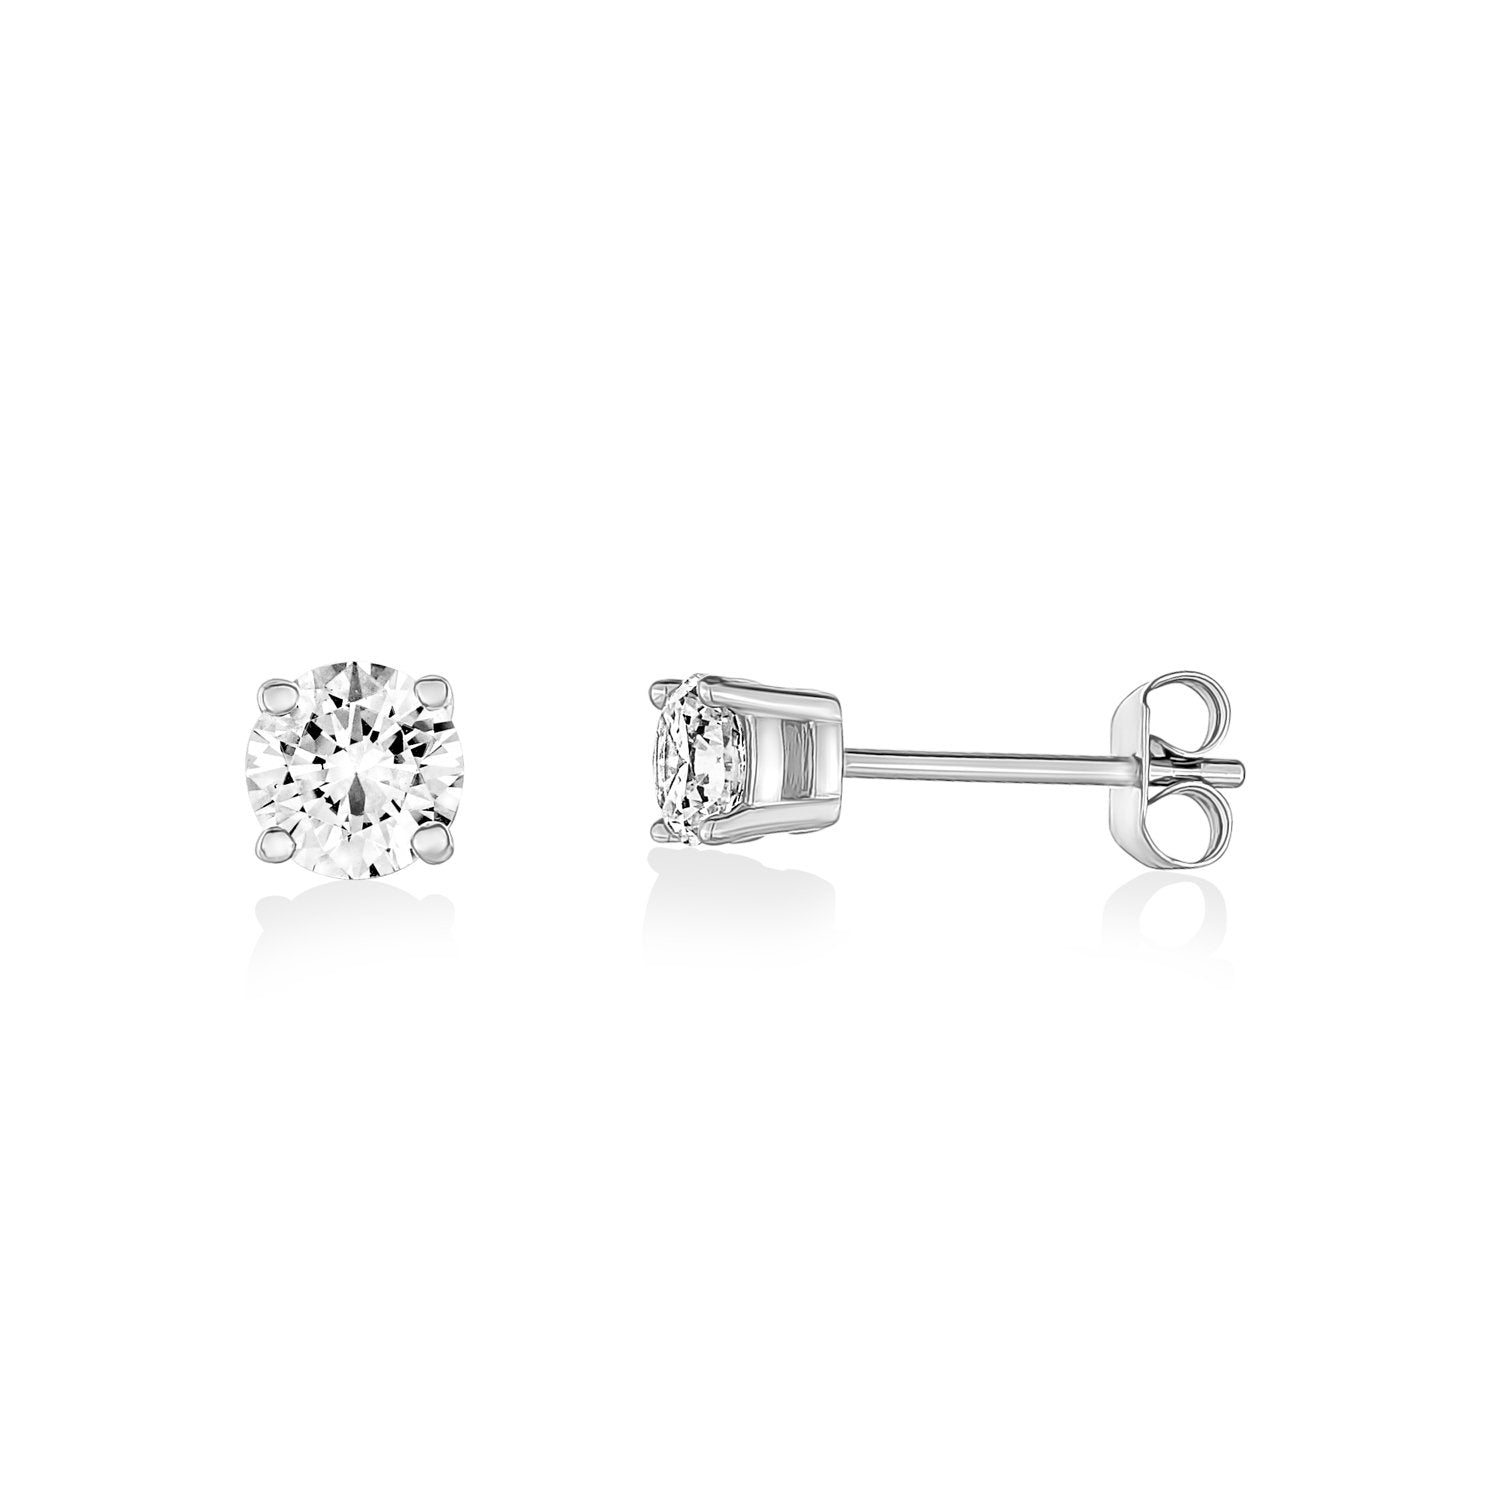 Earrings - 5mm Stainless Steel Cubic Zircon Stud Earrings